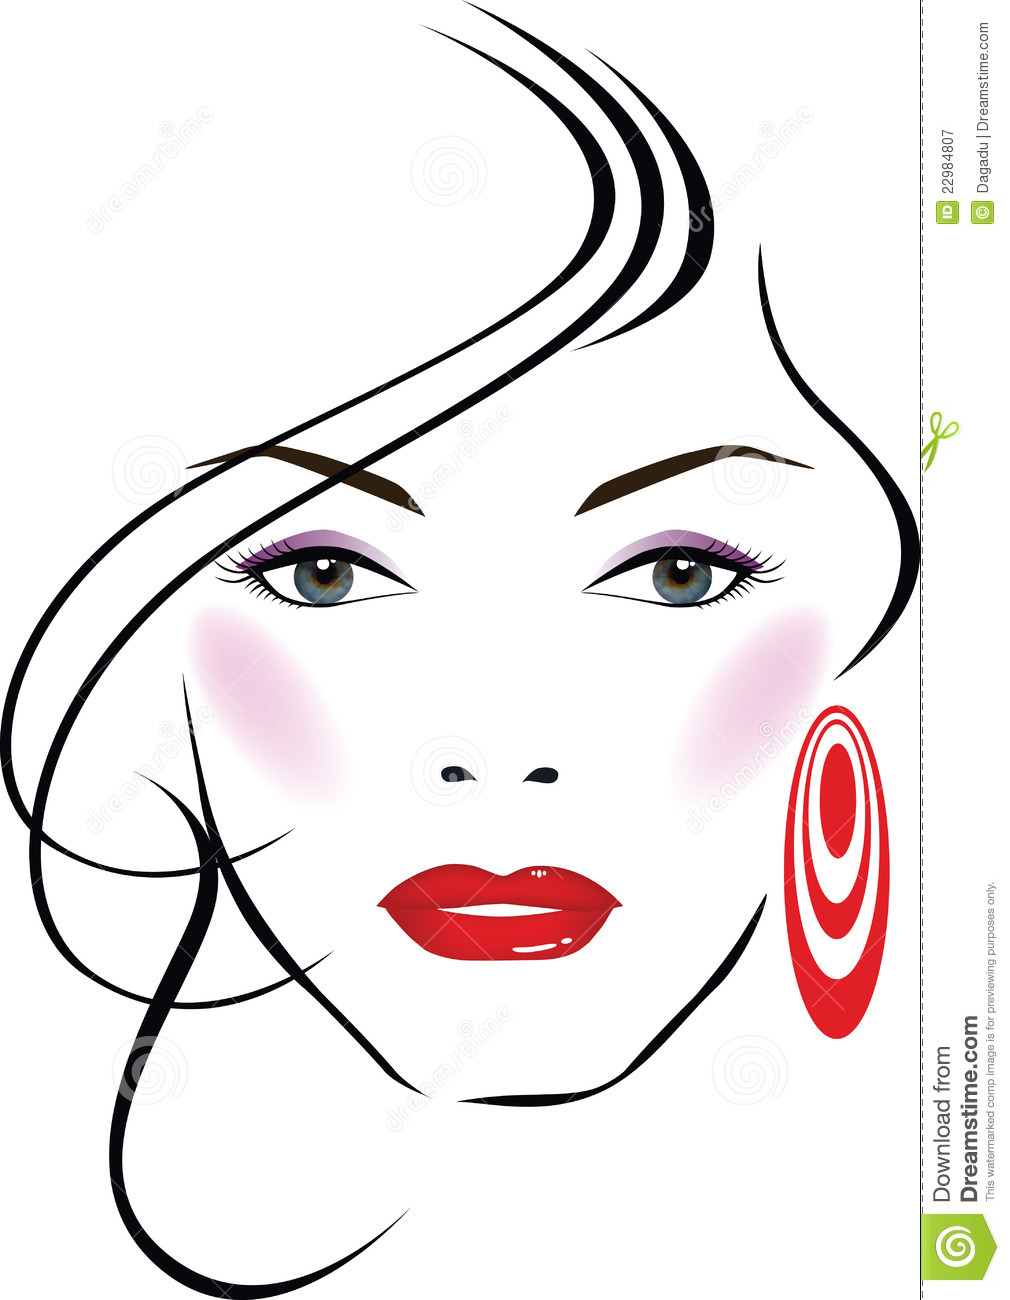 Beautiful Face Line Drawing : Beauty face clipart pixshark images galleries